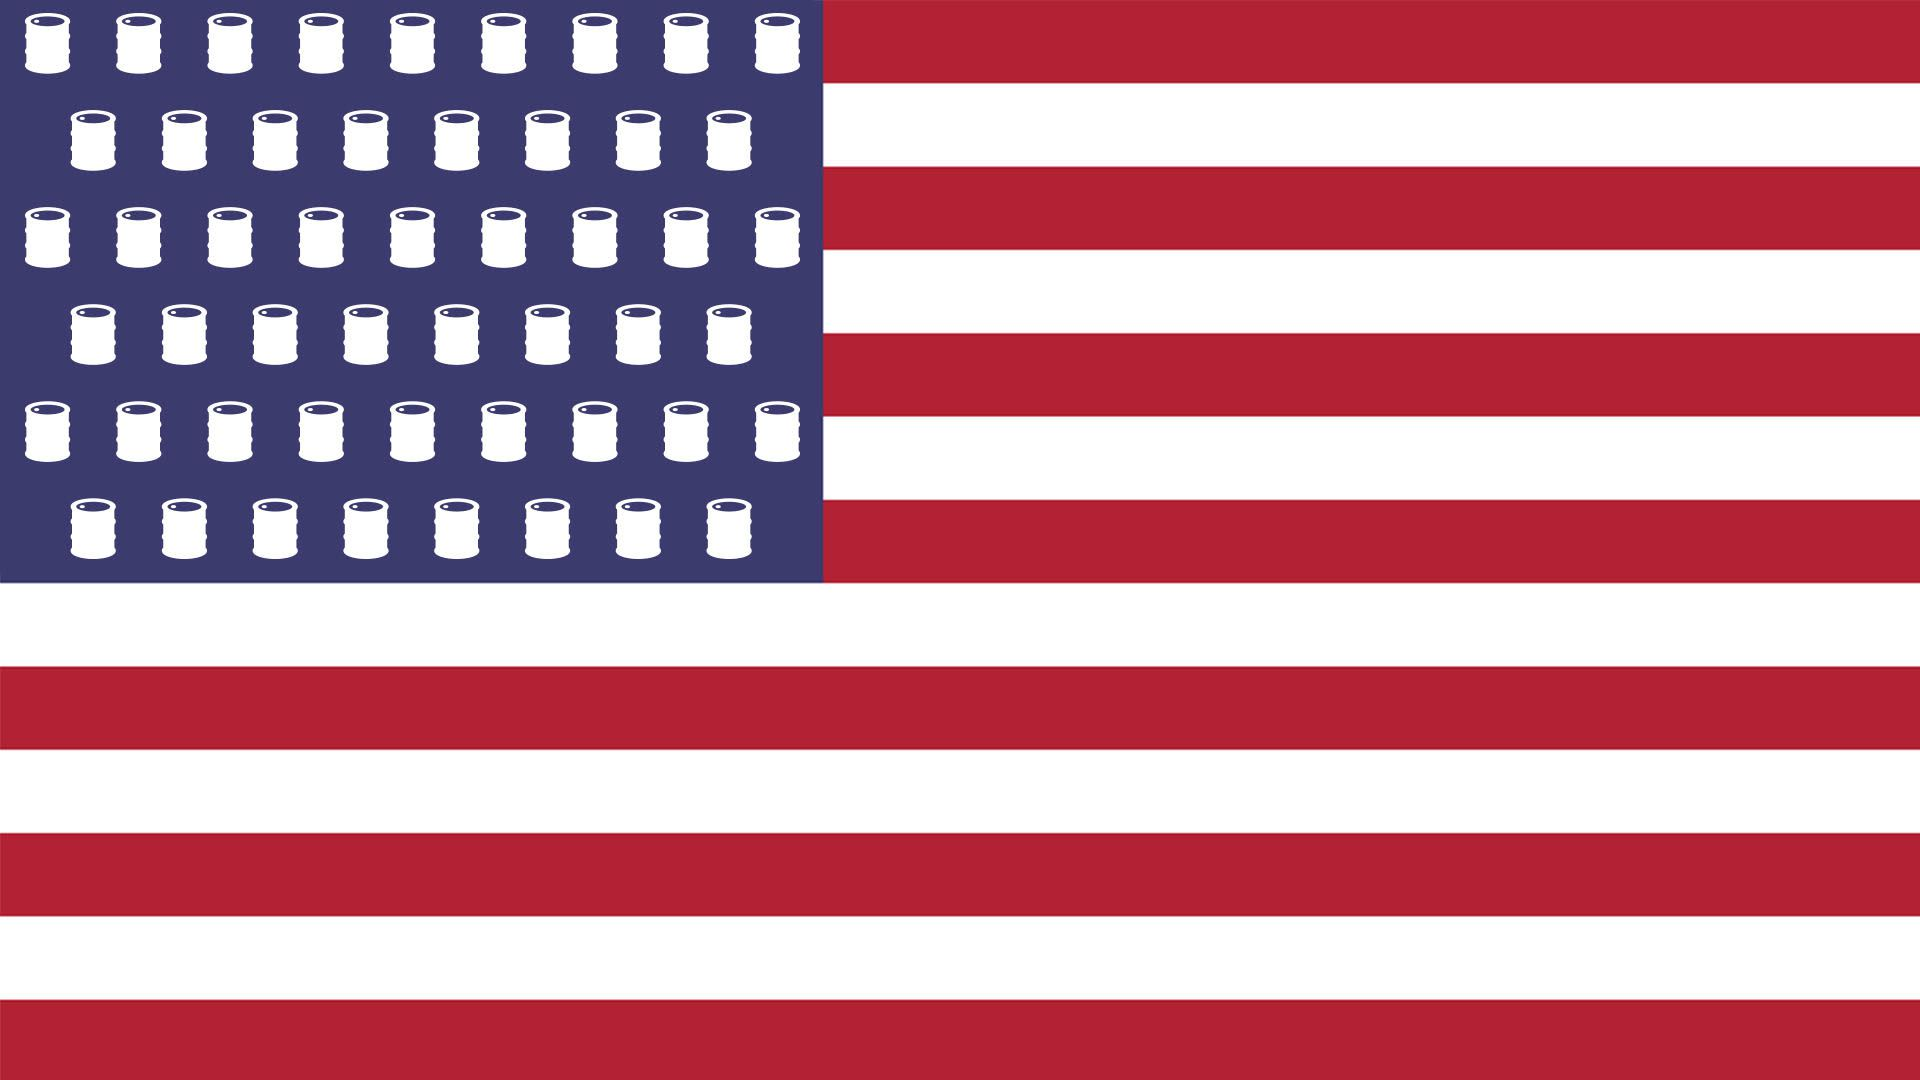 Illustration of an American flag with oil barrels instead of stars.